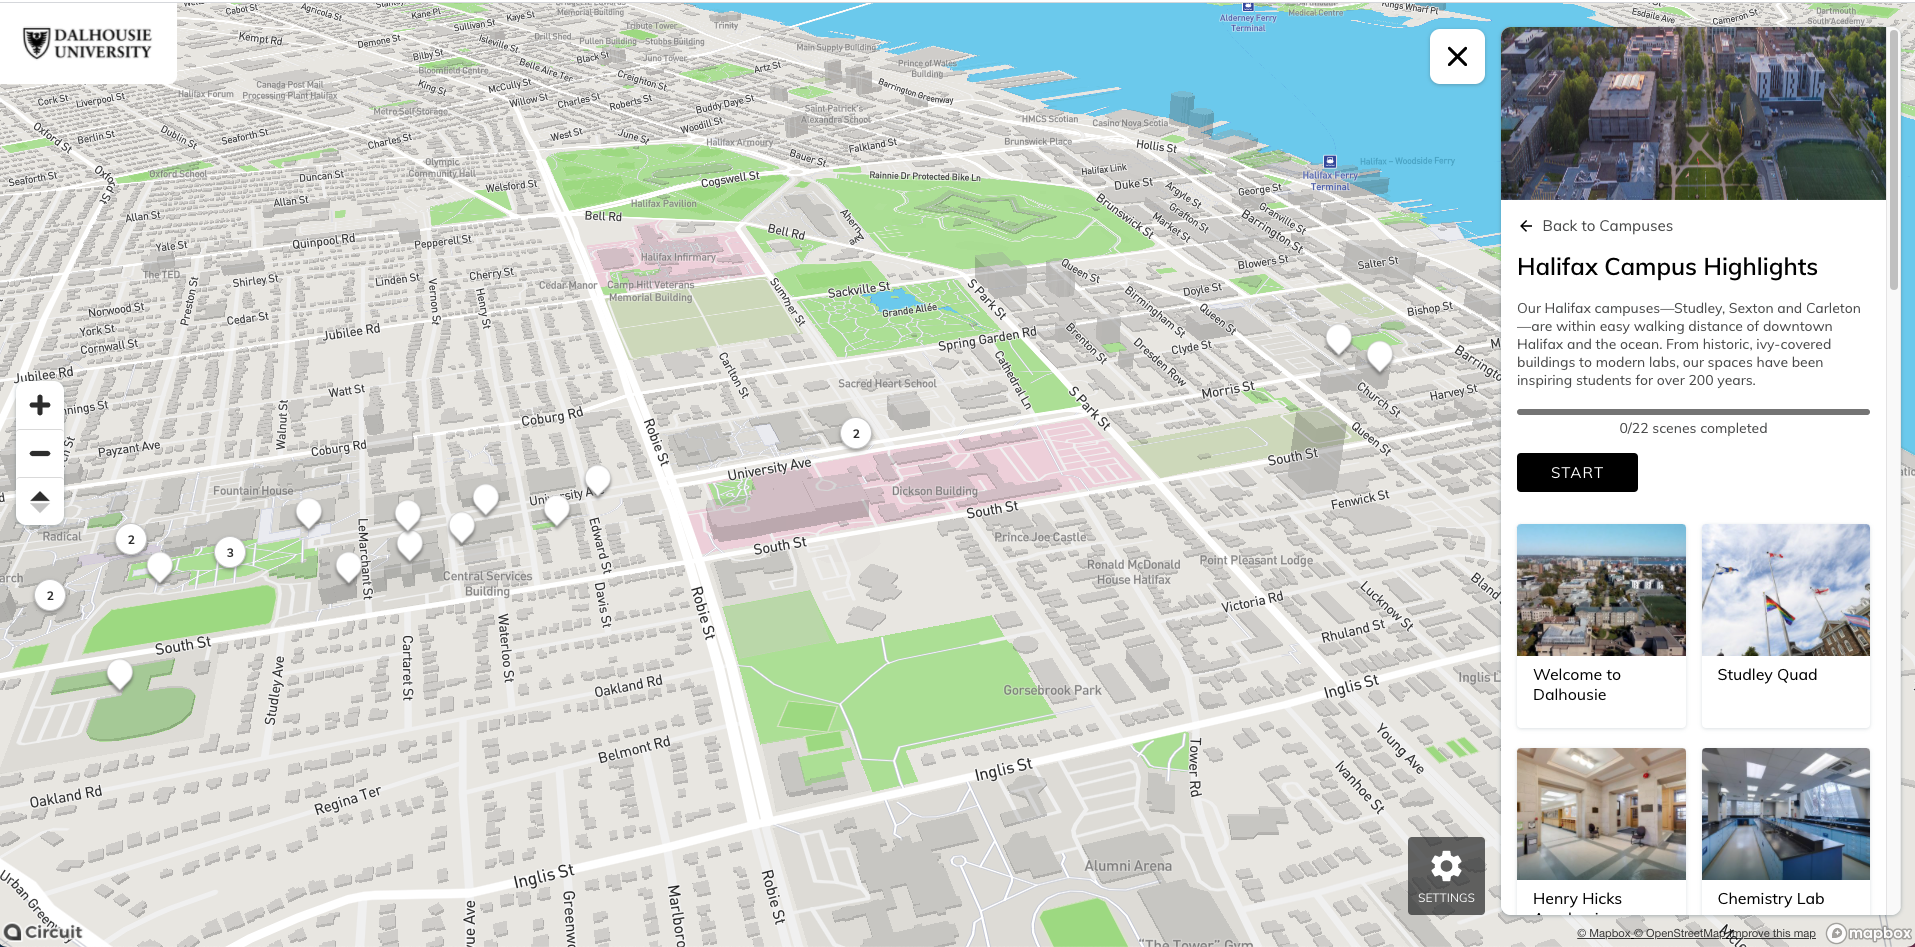 Screenshot from Dalhousie University's virtual tour. Map of Halifax with scenes from virtual tour plotted on it. Right hand side shows the tour menu.